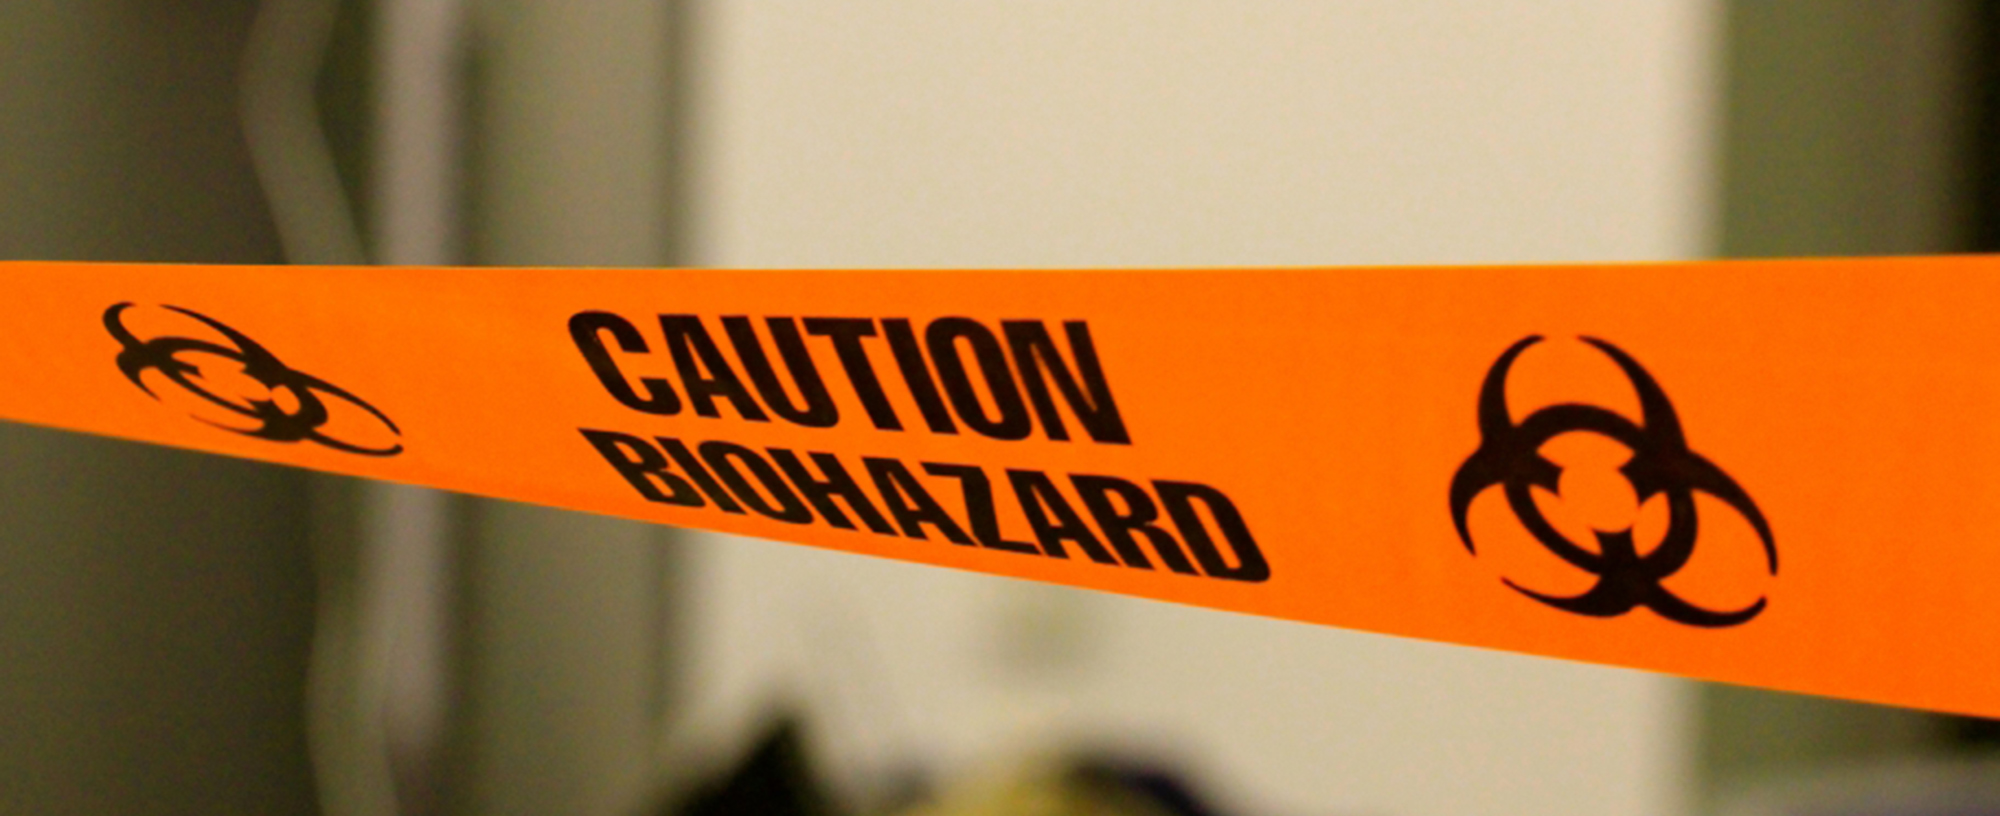 Biohazard Cleanup Services New Jersey